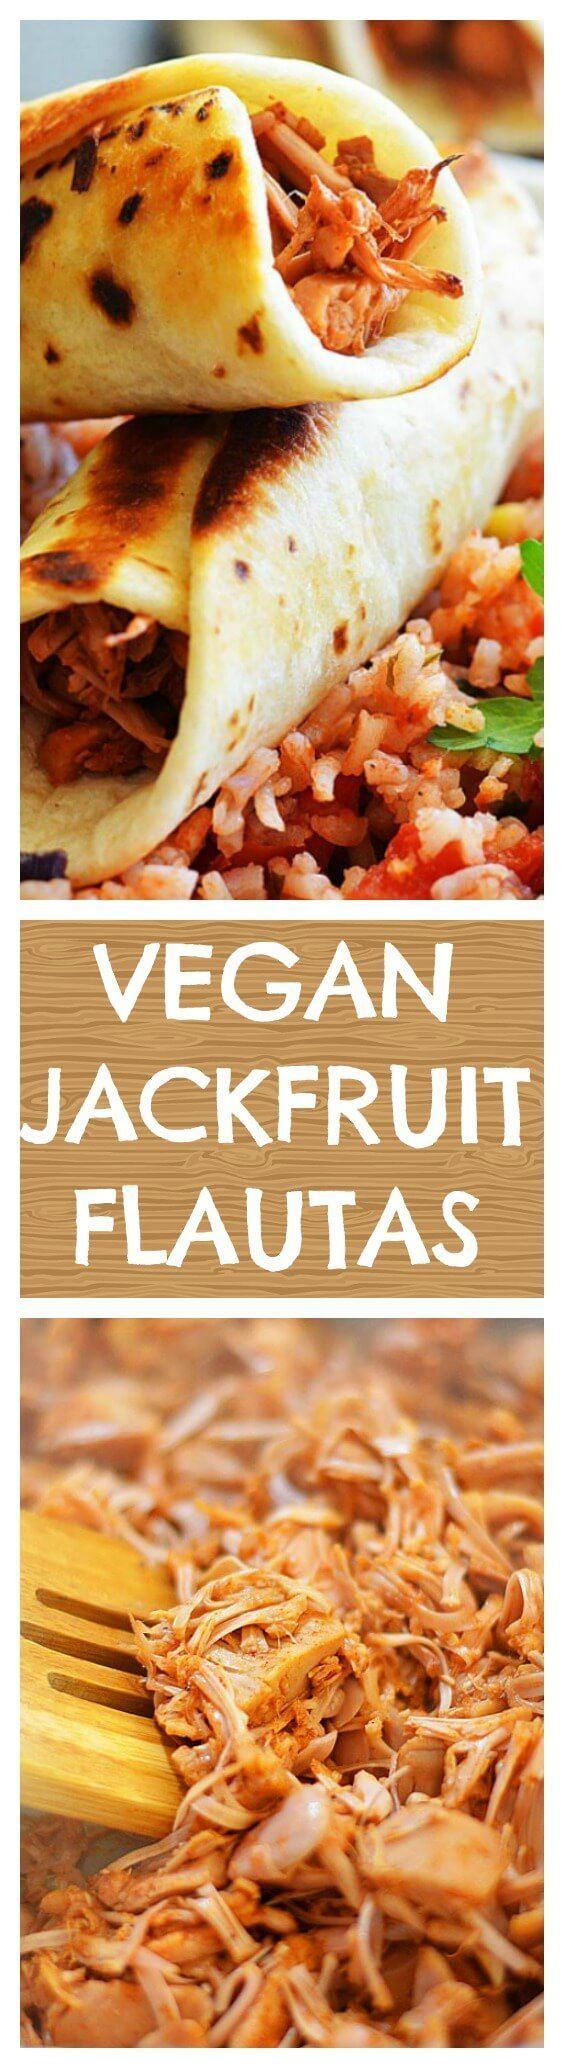 Jackfruit Flautas with Sweet Corn Sauce - TheVegLife